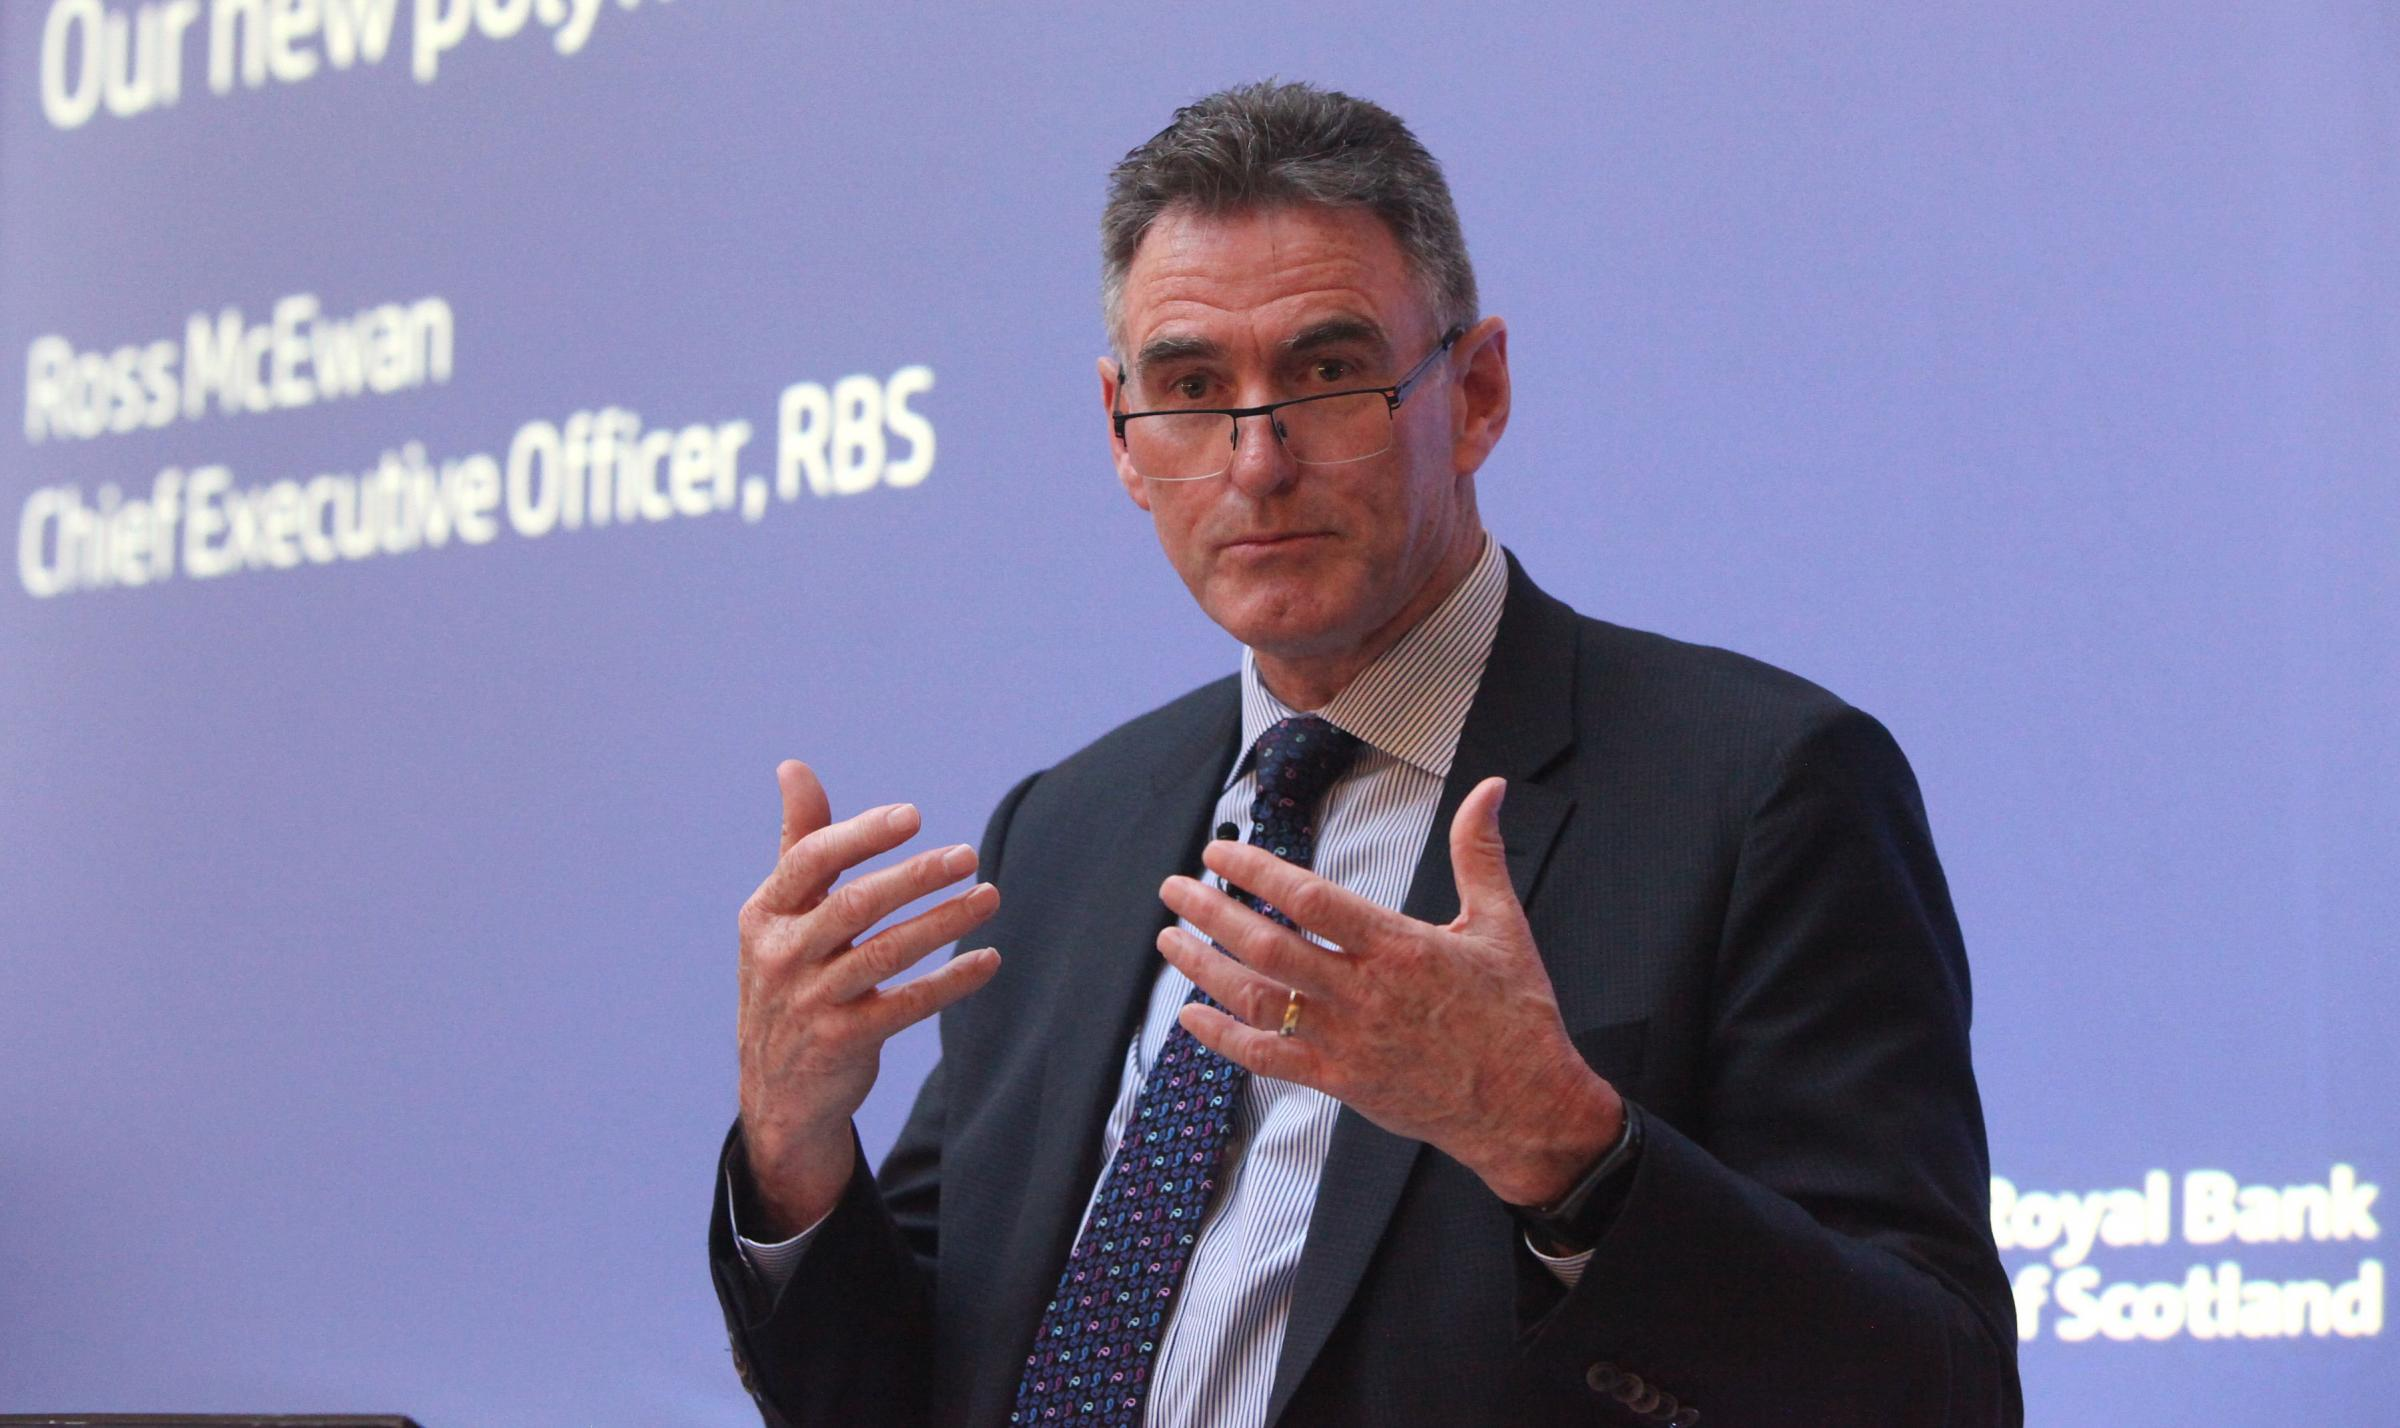 Confidence in Royal Bank of Scotland (RBS) Shares by Societe Generale Rise